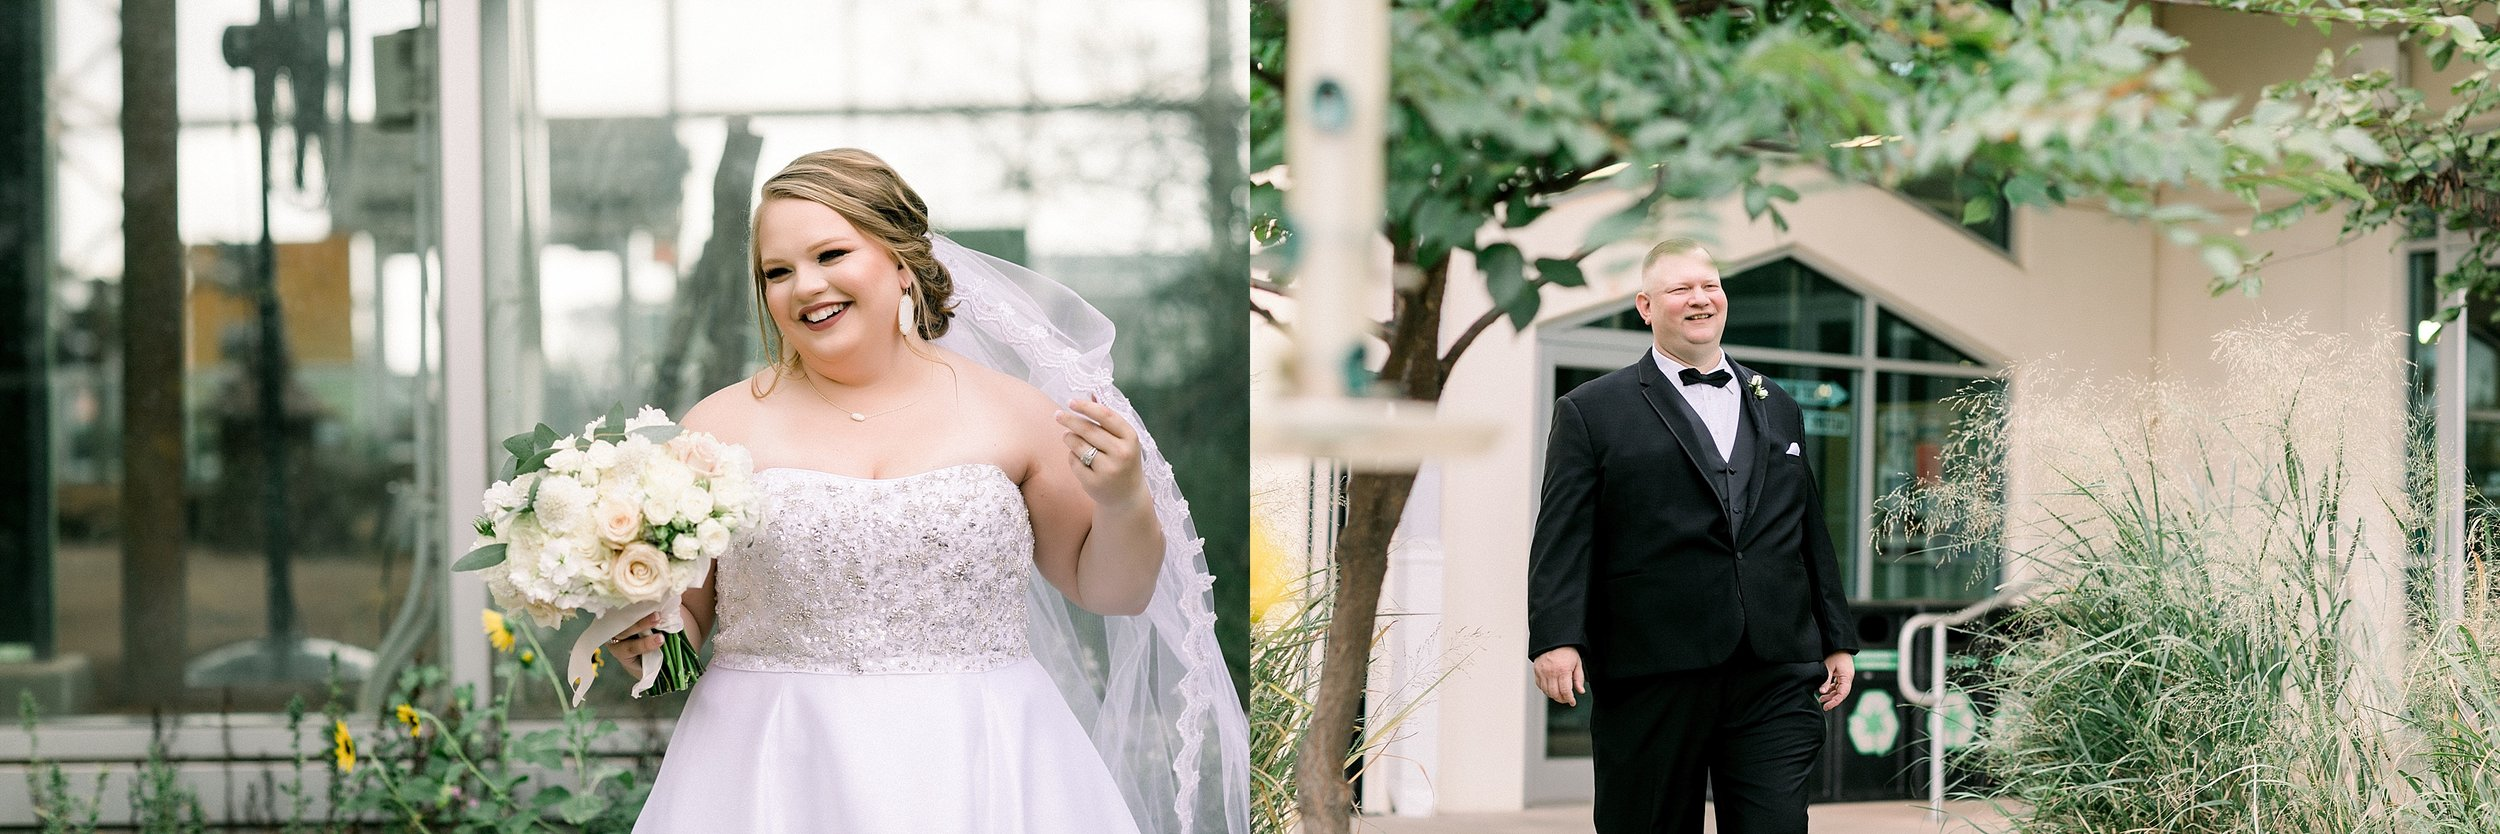 Ryanne-and-william-wedding-at-river-bend-nature-center-wichita-falls-texas-two-clever-chicks-0058.jpg